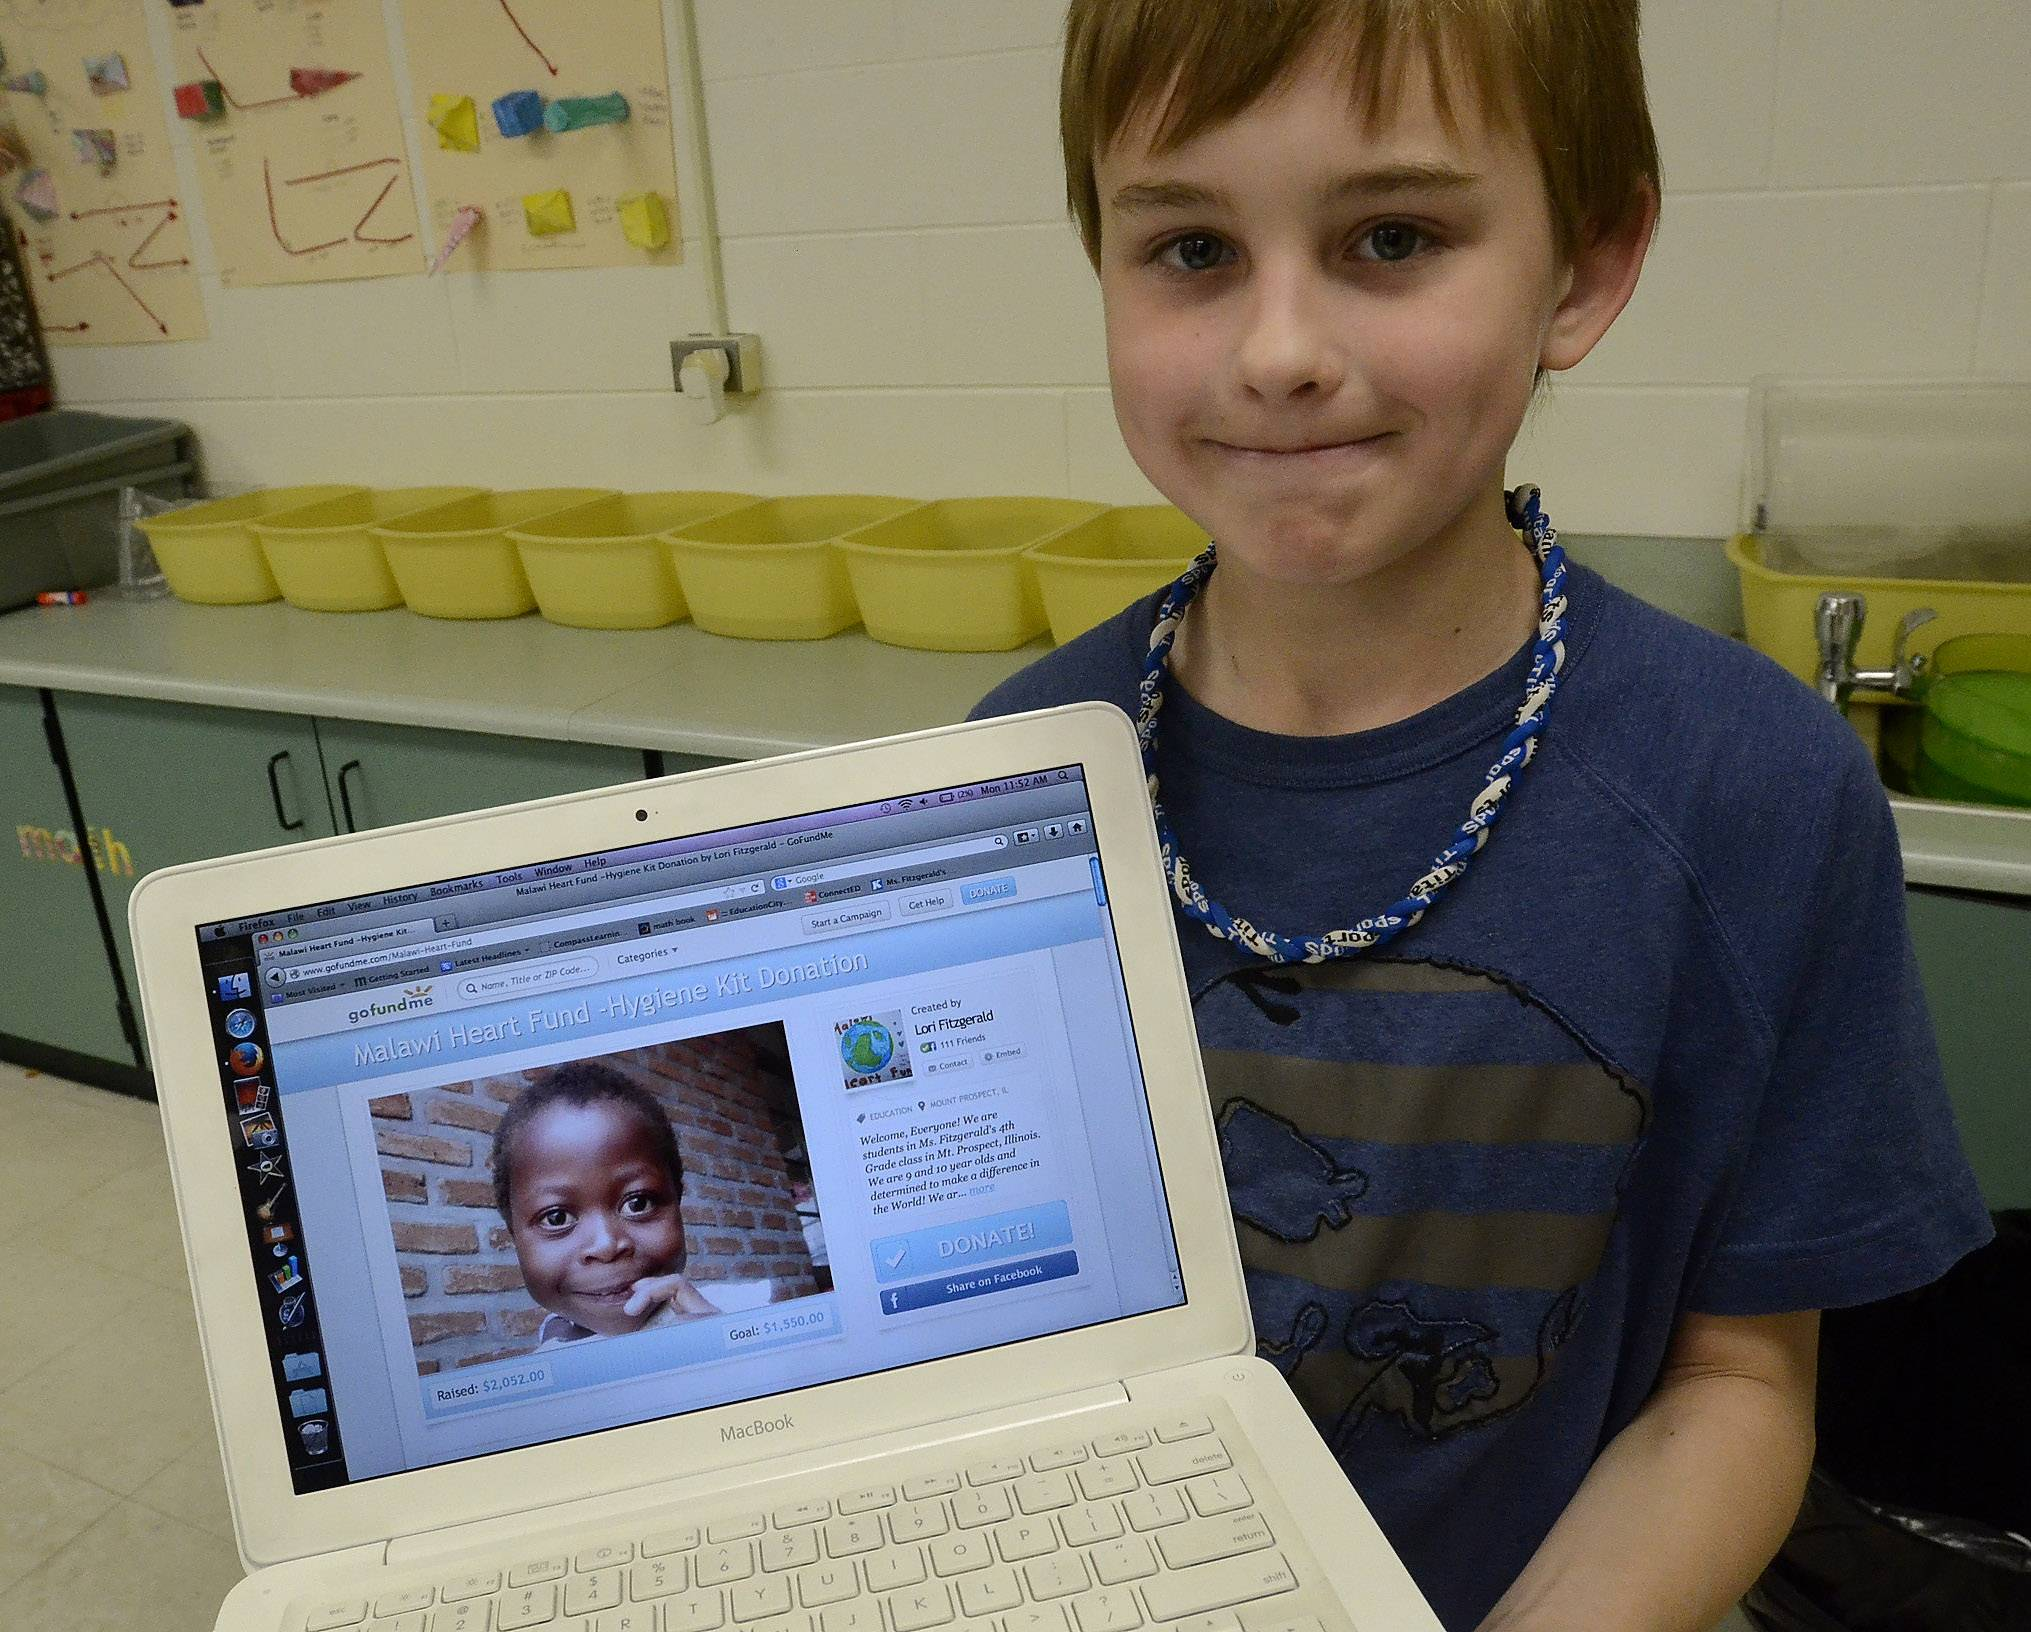 Matthew Christerson shows the website his class is using to raise money for their special project.